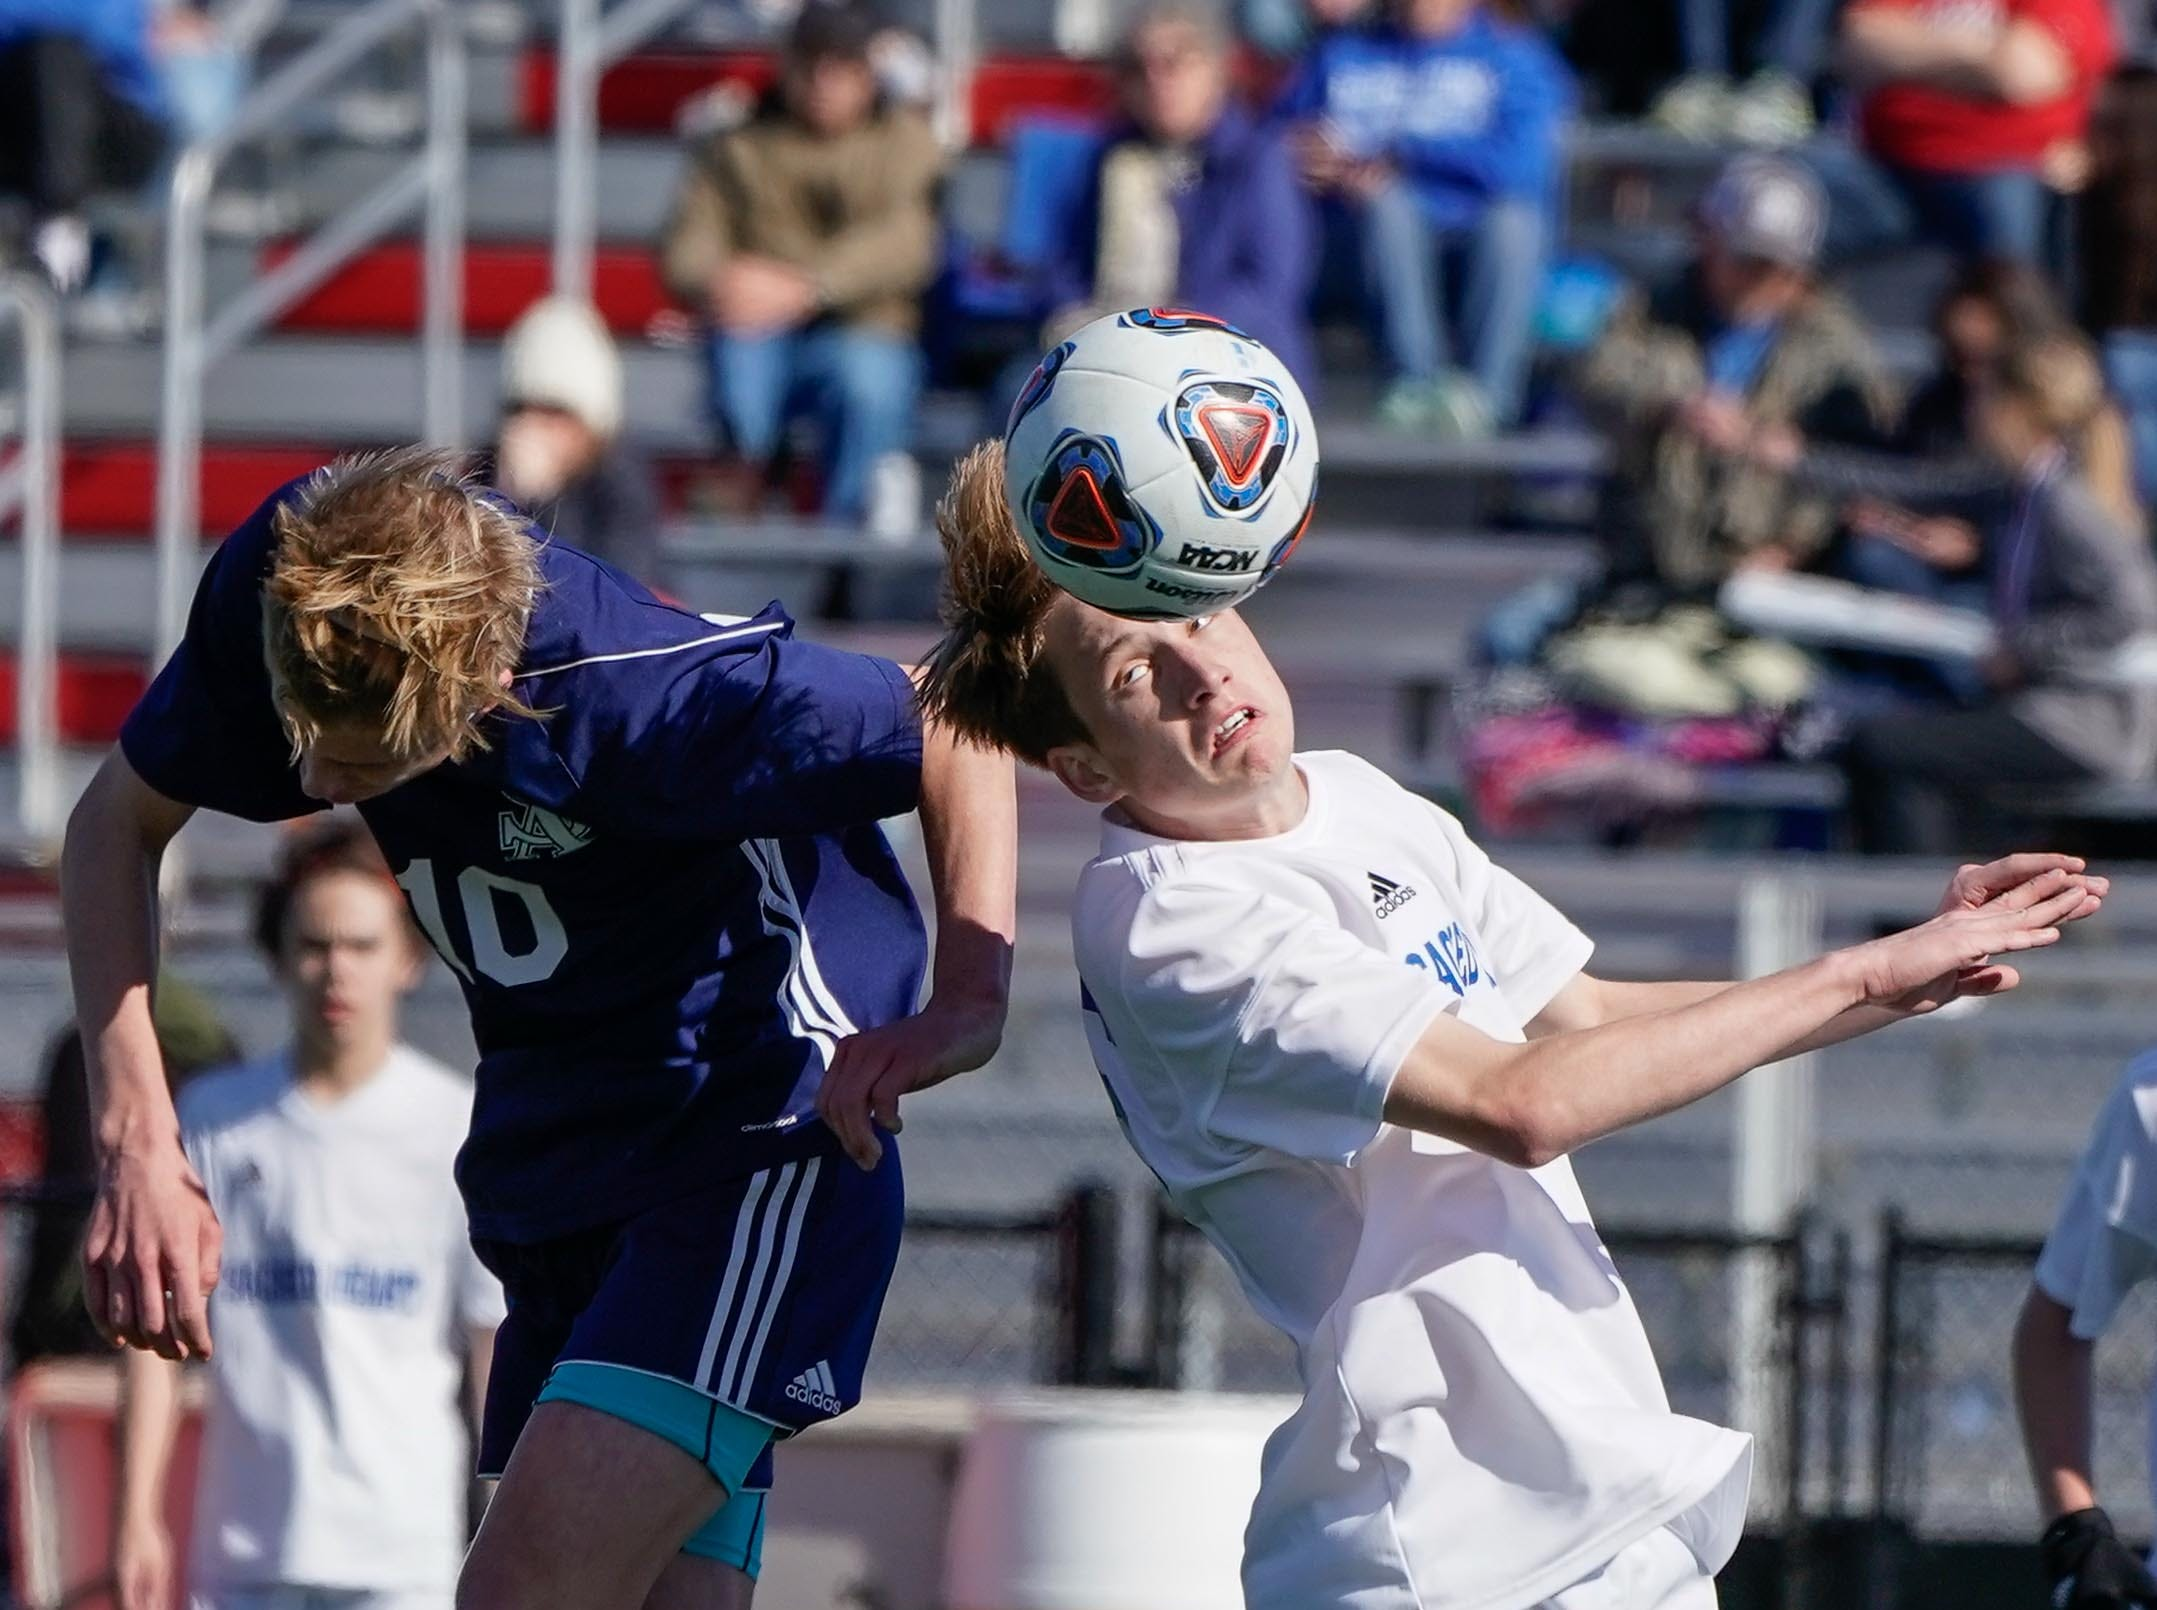 St. Andrew's Jackson Bataille (10) and Sacred Heart's Heath Hogan (16) fight for a ball during the MHSAA 1A,2A,3A  Boys Soccer Championships held at Brandon High School in Brandon, MS, Saturday February 9, 2019.(Bob Smith-For The Clarion Ledger)